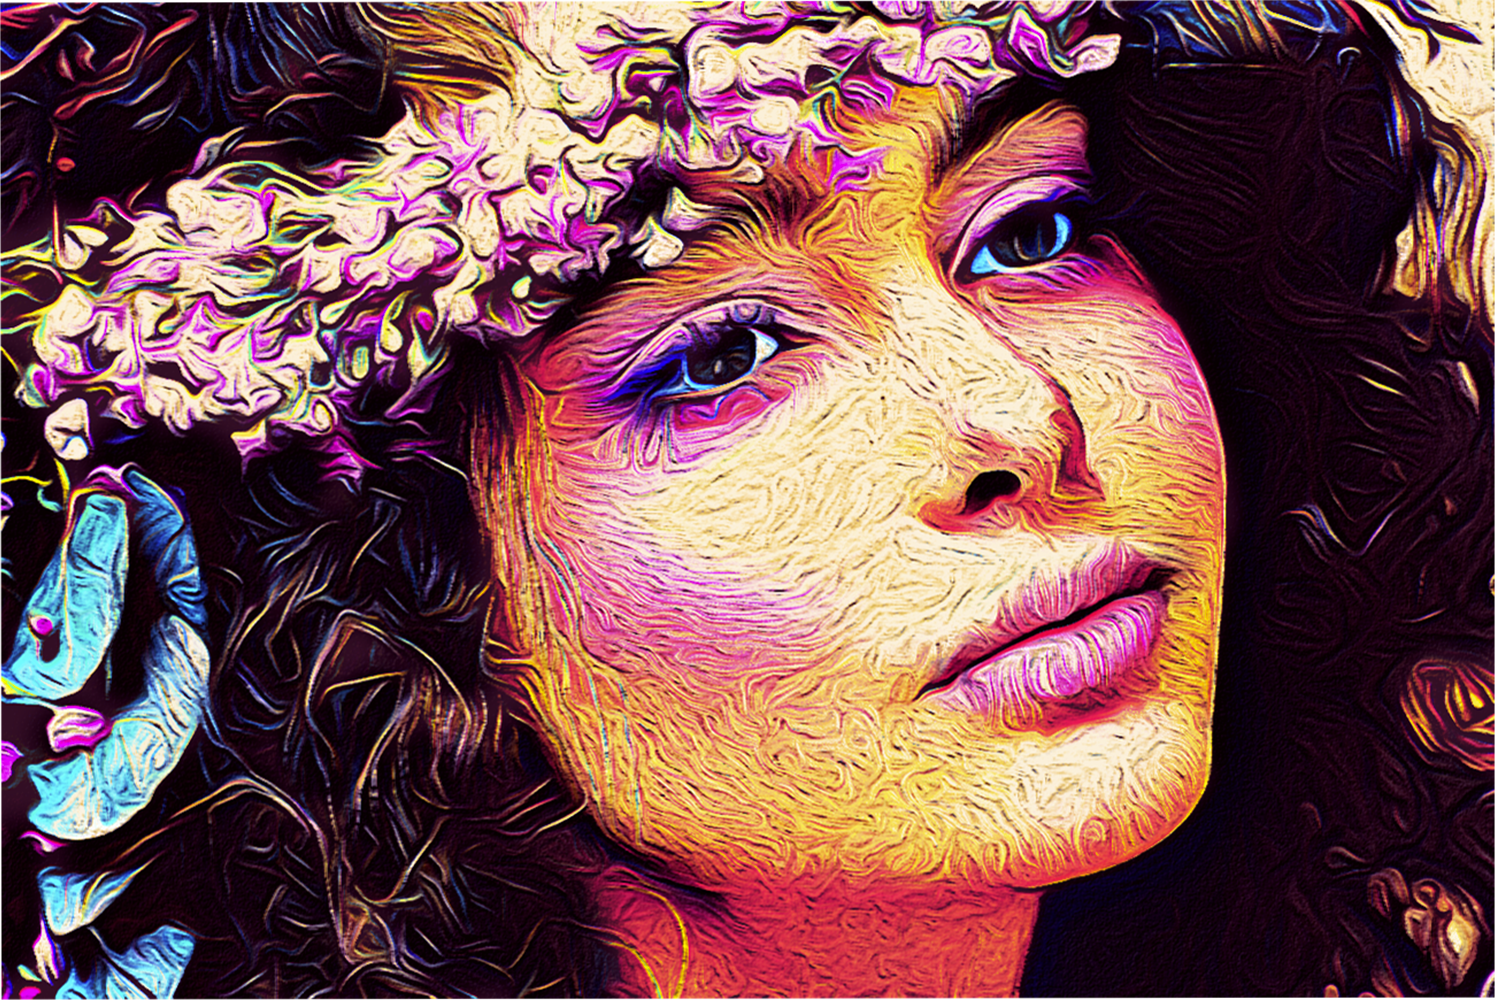 Realistic Digital Painting Effect 2.0 example image 19